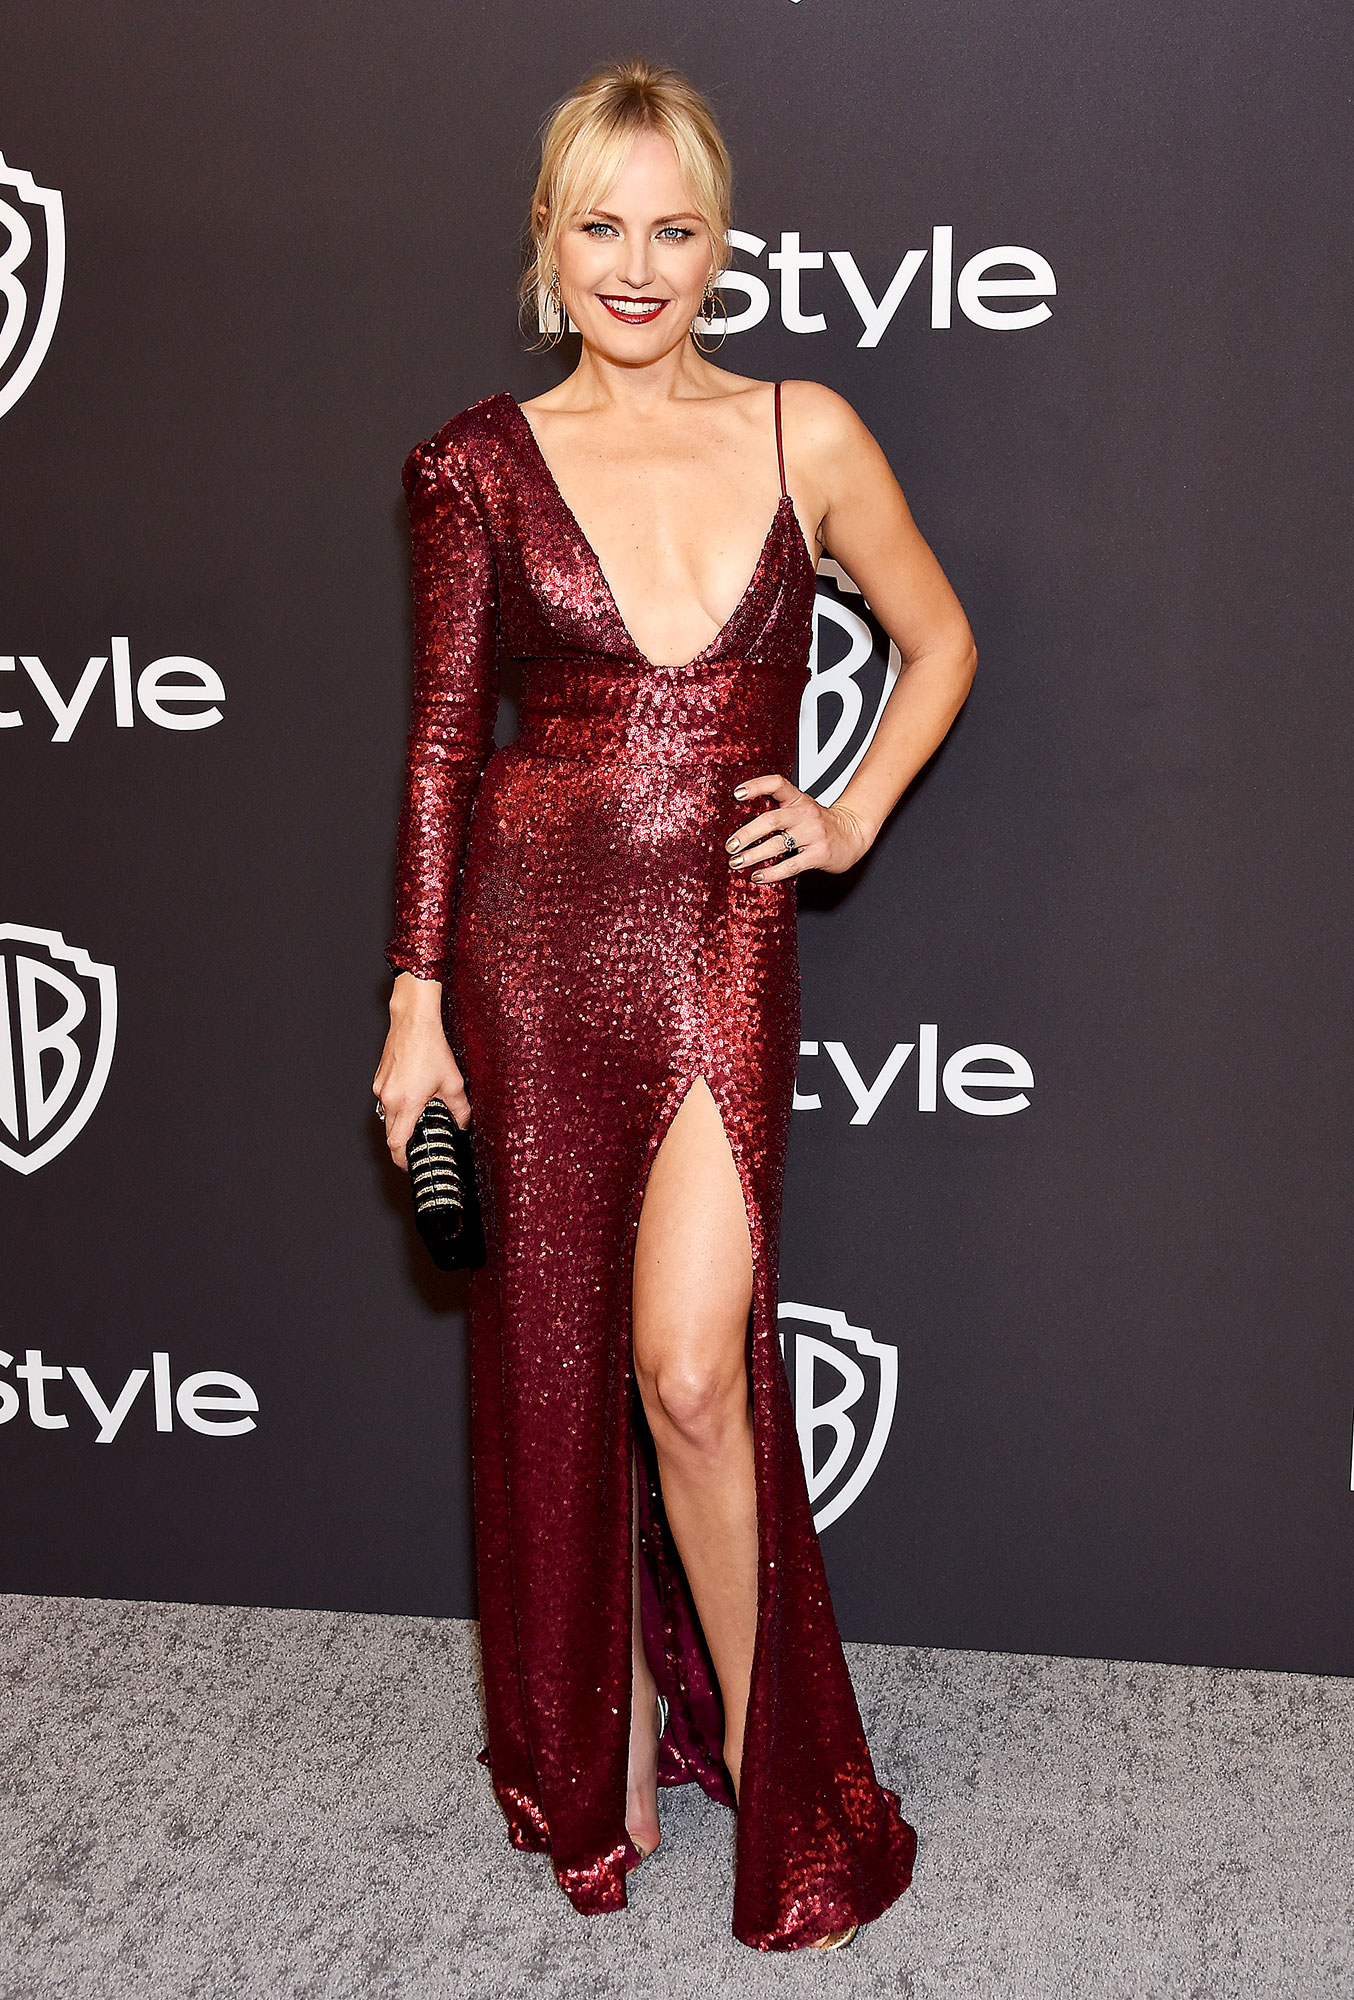 Stylish Burgundy Malin Akerman - In a high-slit Iris Serban on Jan. 6.